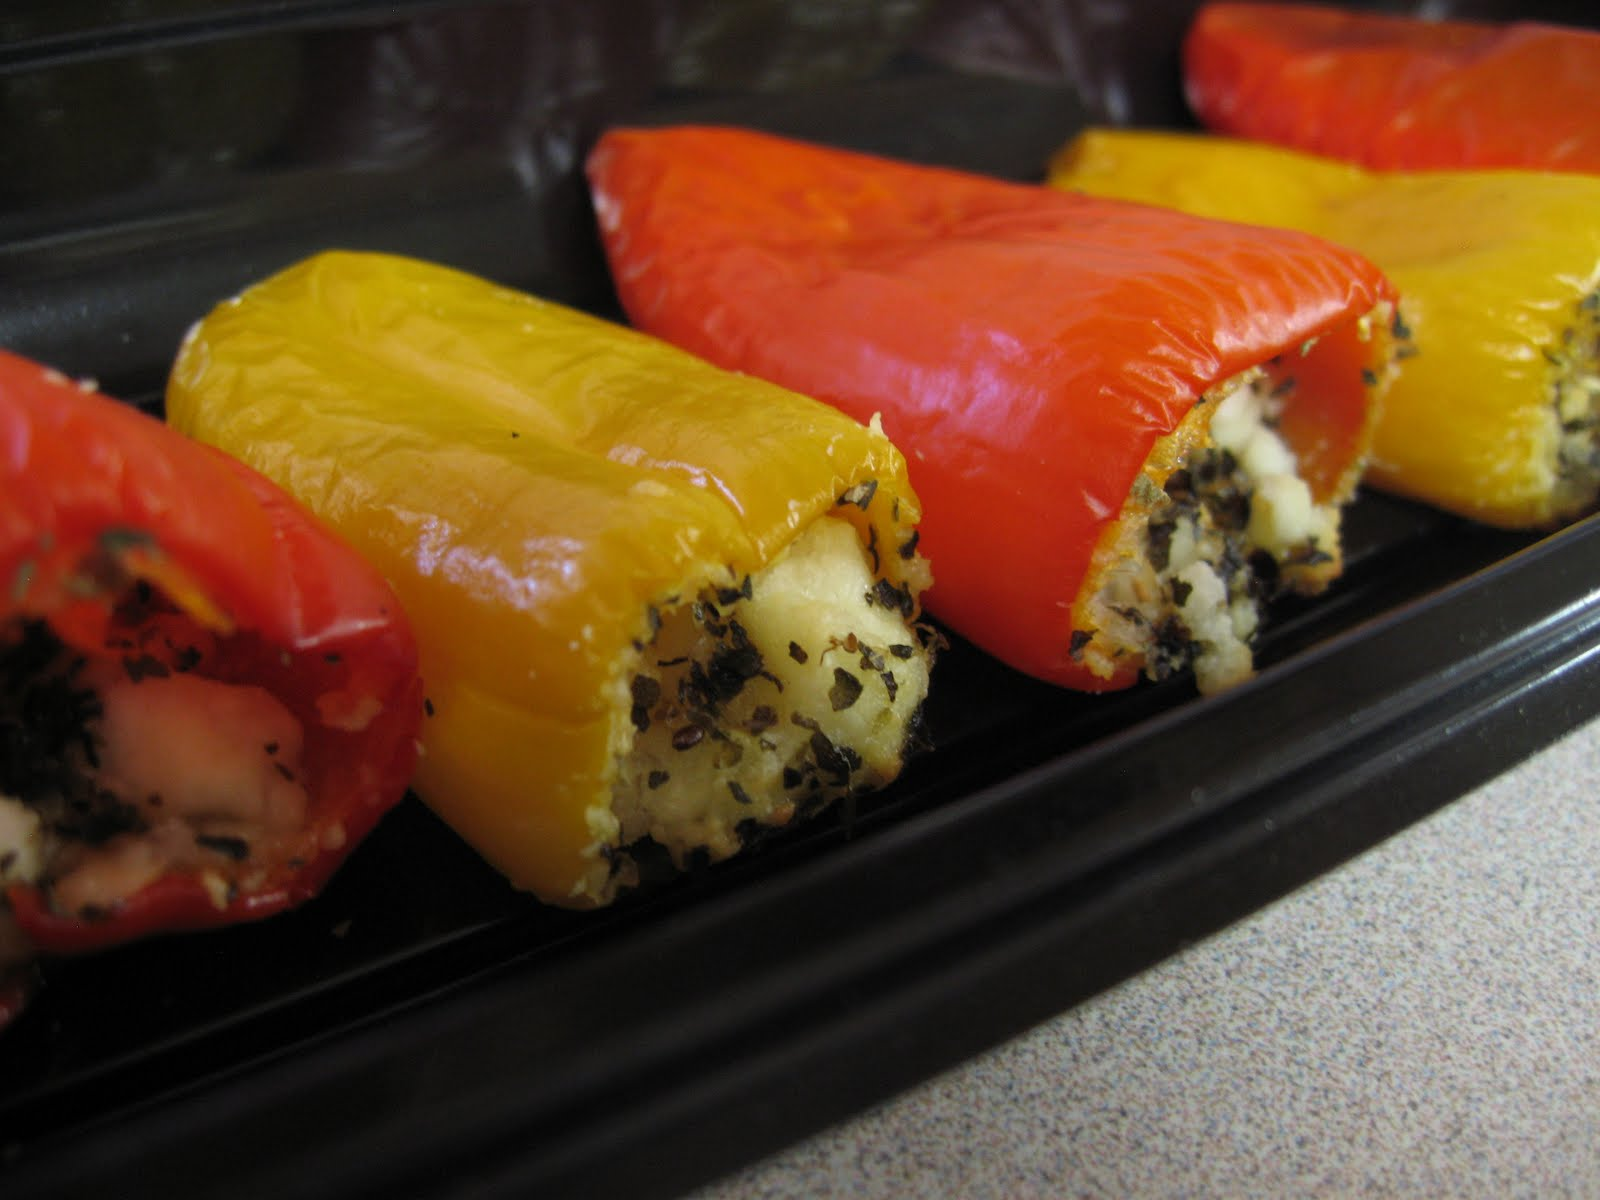 ... stuffed peppers polenta stuffed peppers couscous and feta stuffed